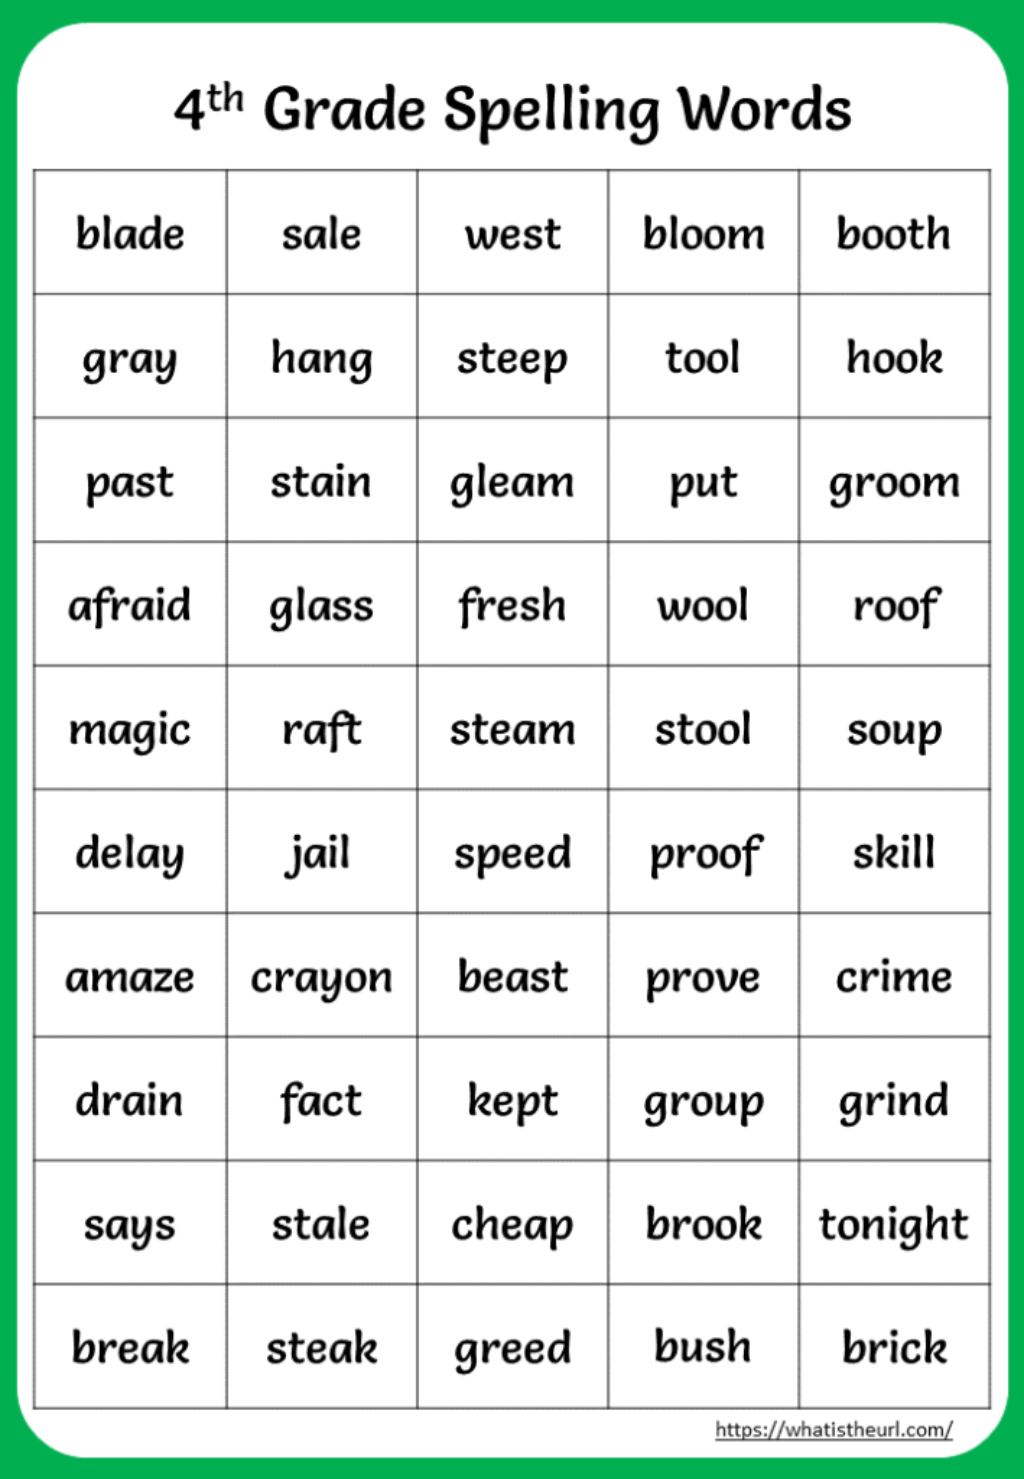 4th Grade Spelling Words Charts